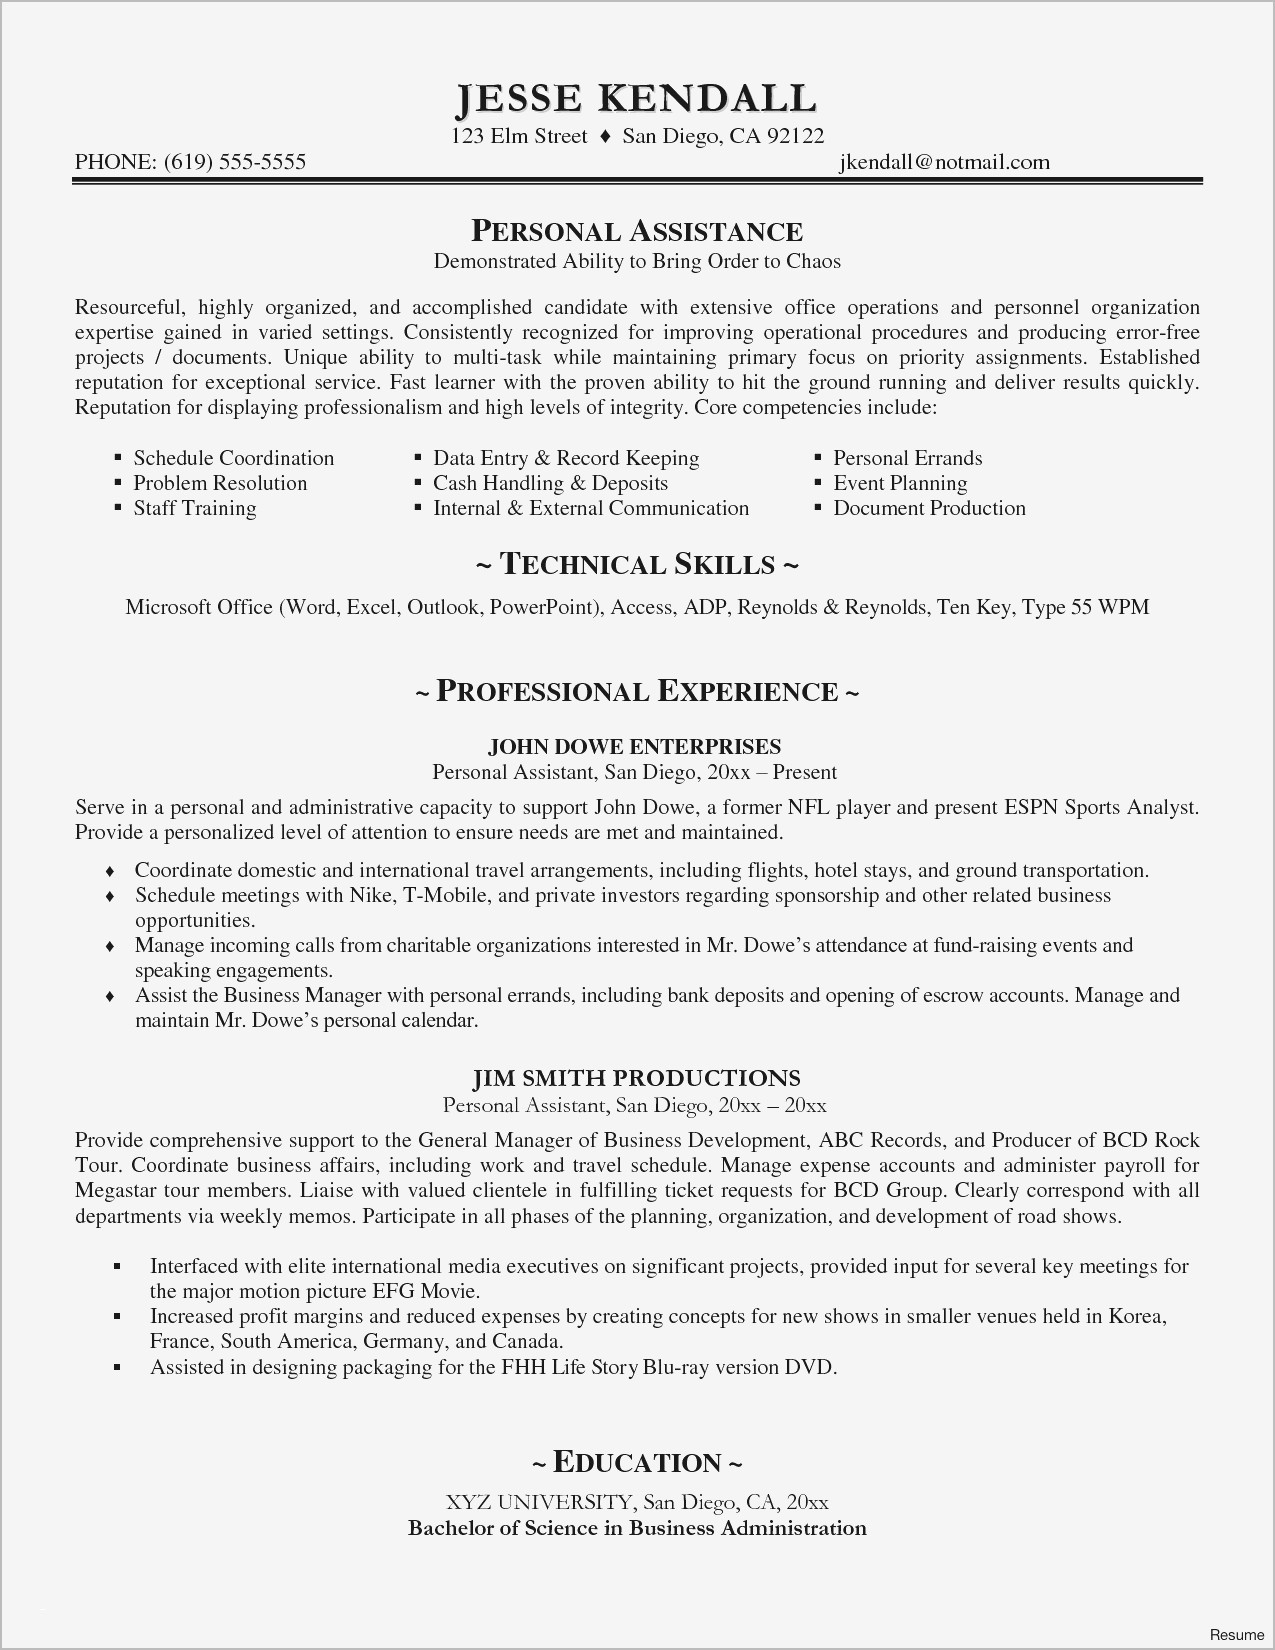 Resume for Internal Promotion - Resume for Internal Promotion Template Best New Resume for